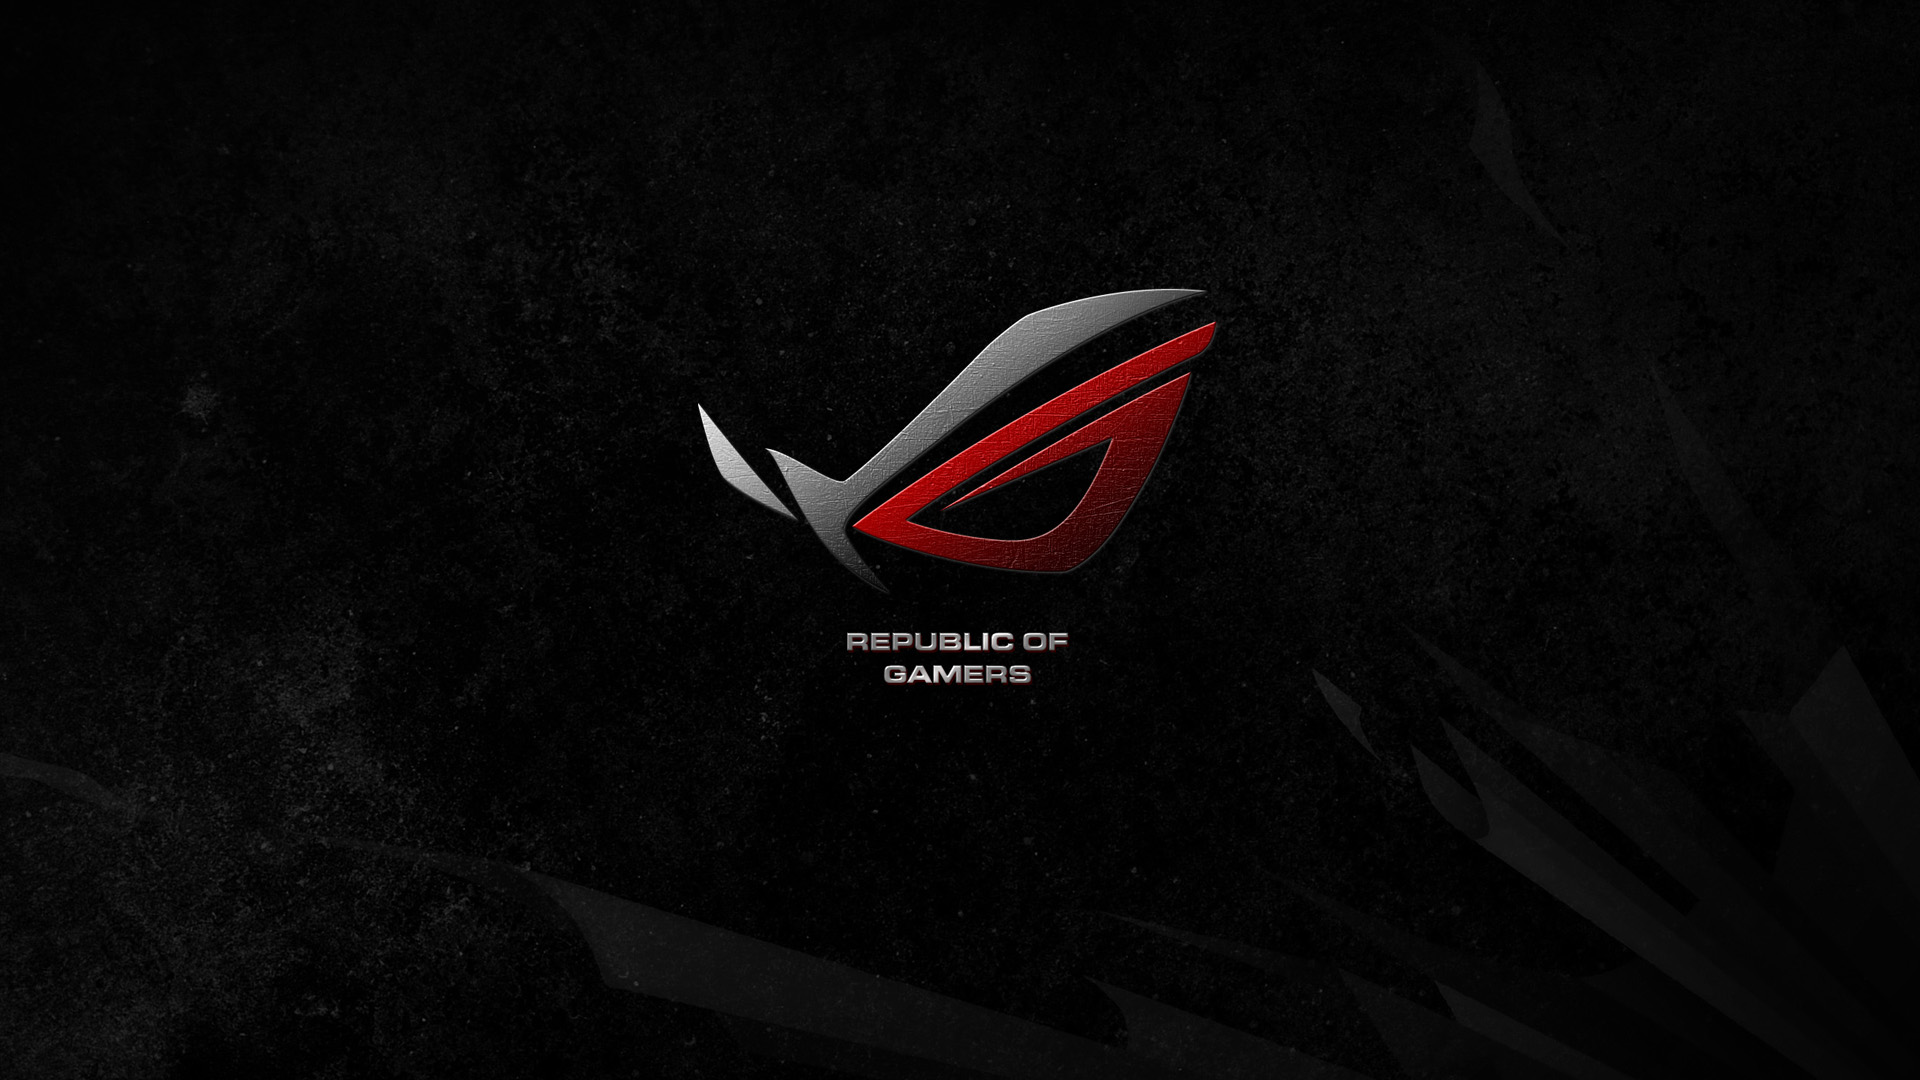 Asus pb287q monitor 2014 4k uhd wallpaper competition page 64 - 2013 Rog Desktop Wallpaper Competition Until 30th April Page 10